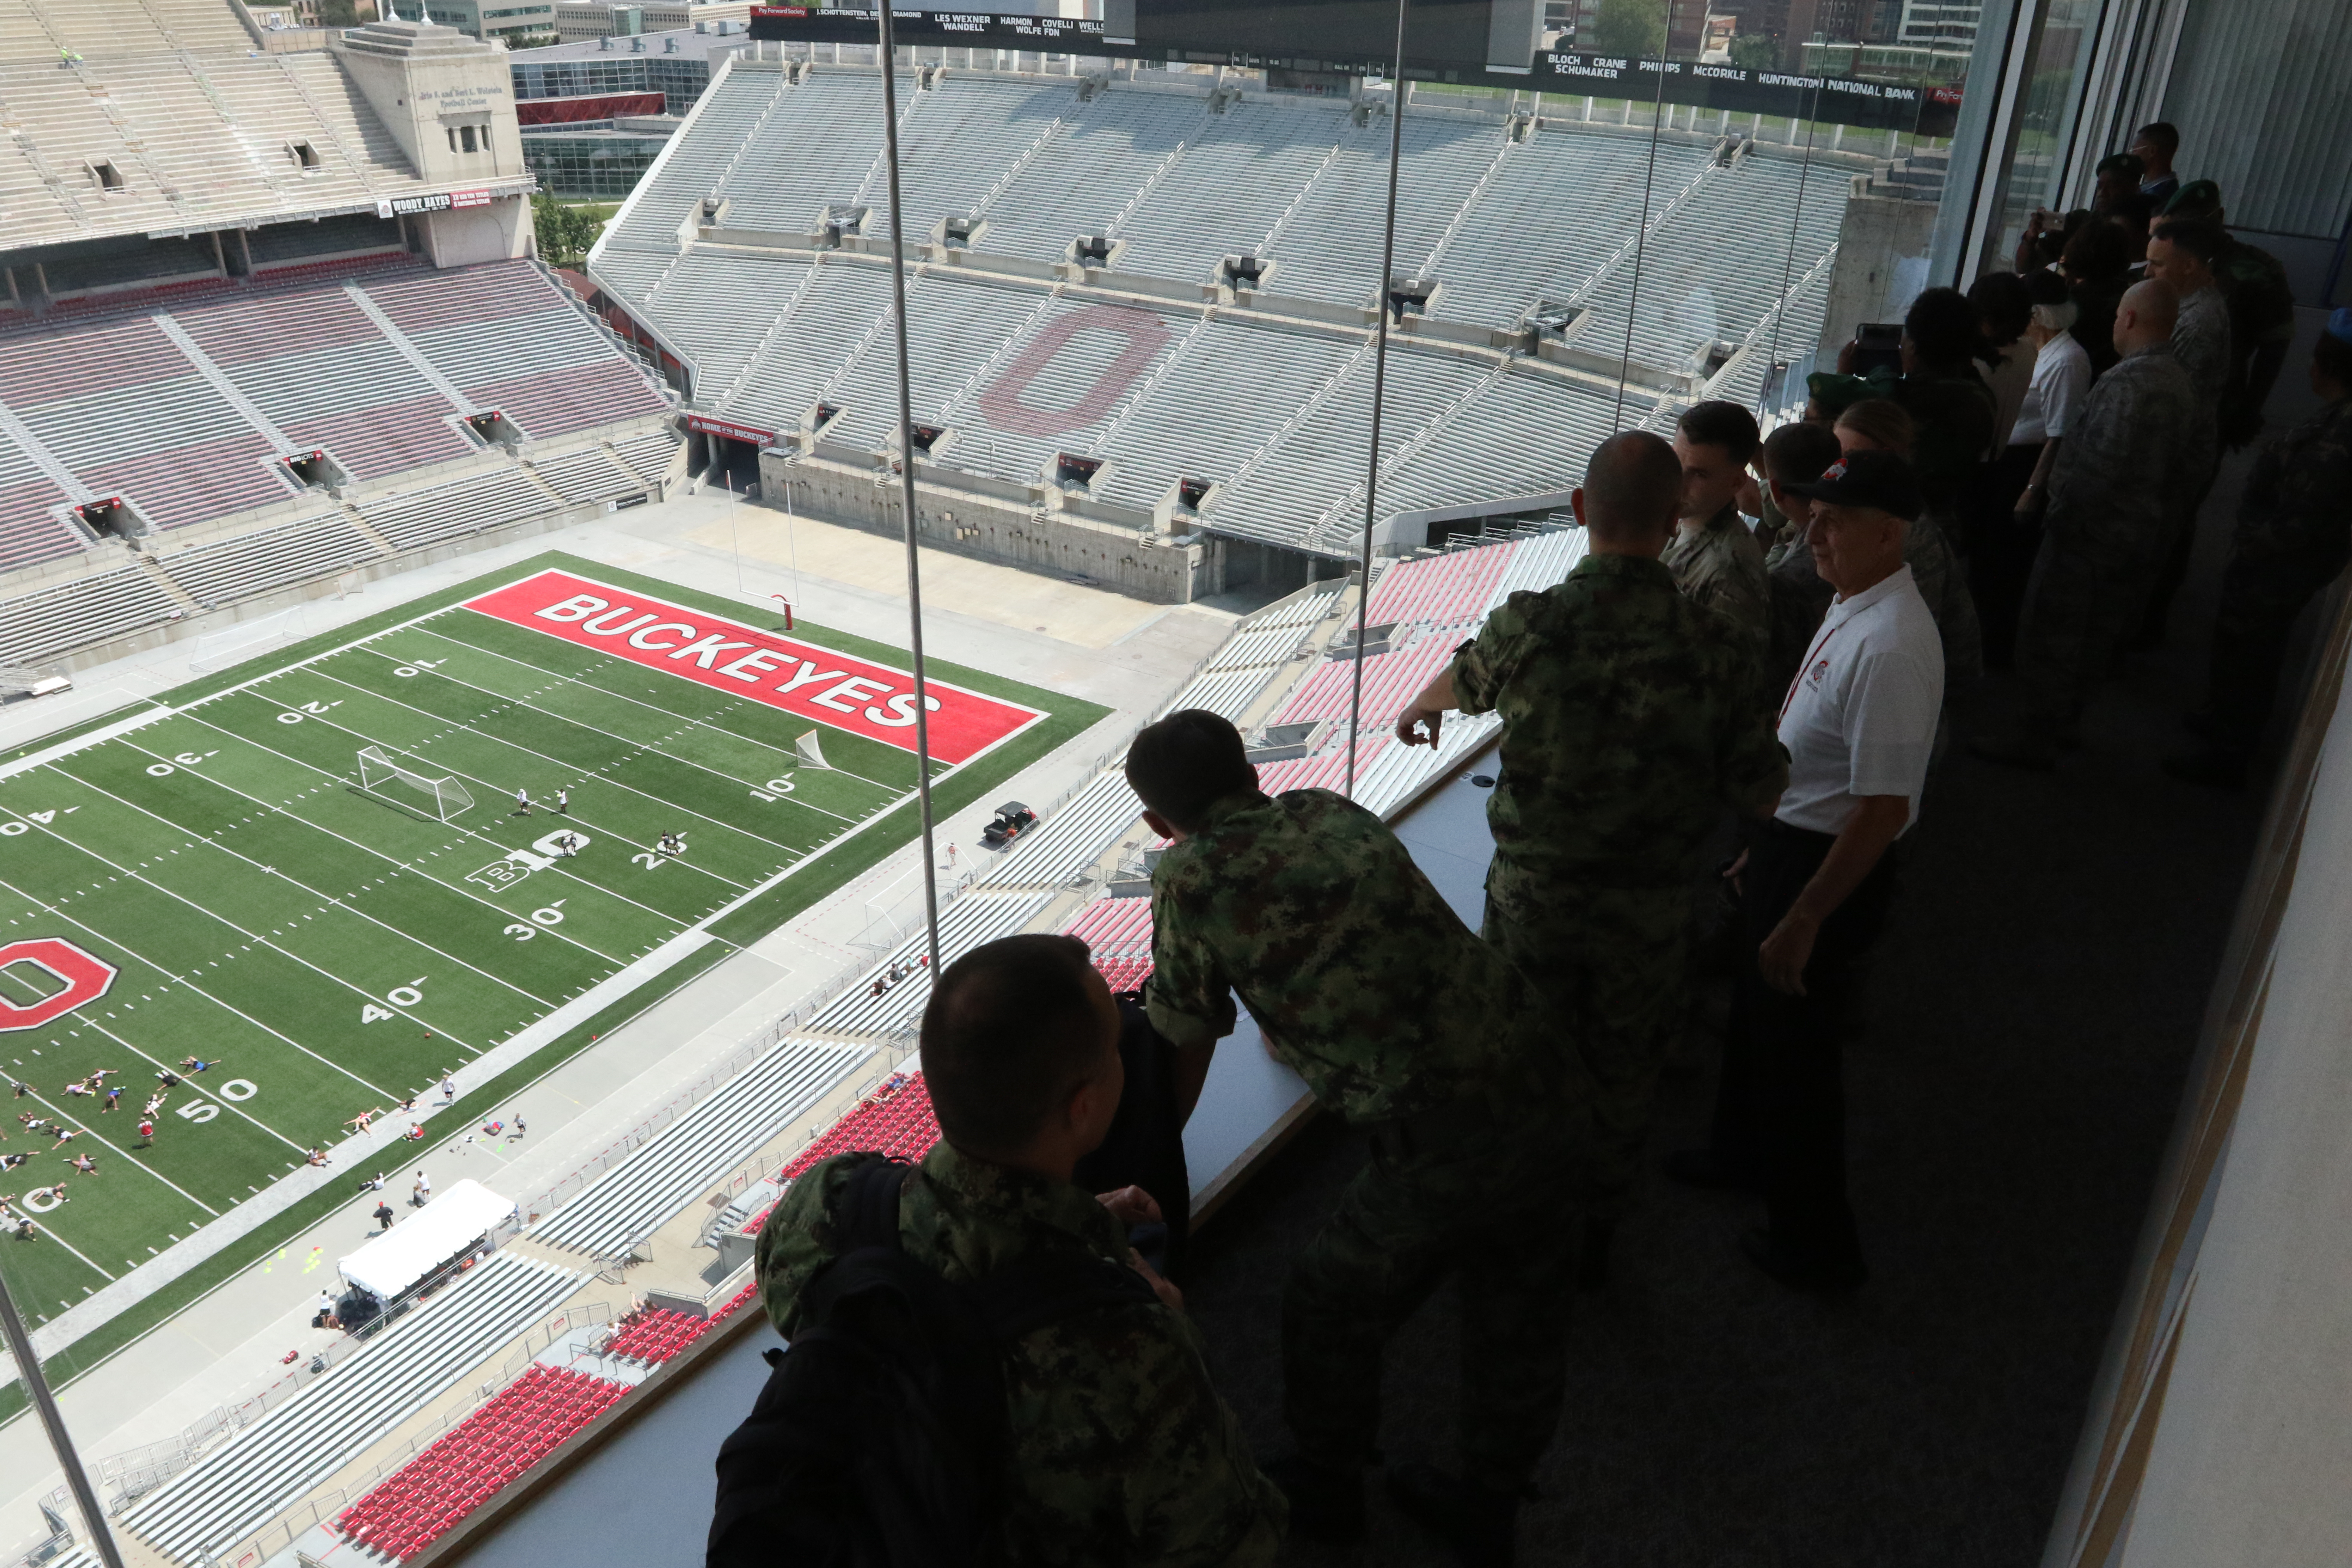 Members of the Serbian and Angolan Armed Forces tour Ohio Stadium with members of the Ohio National Guard during downtime at a Combined Medical Engagement planning event, July 29, 2017, in Columbus, Ohio. The foreign visitors were able to tour one of the country's iconic sports facilities, located on the campus of The Ohio State University. (Ohio National Guard photo by Staff Sgt. Michael Carden)